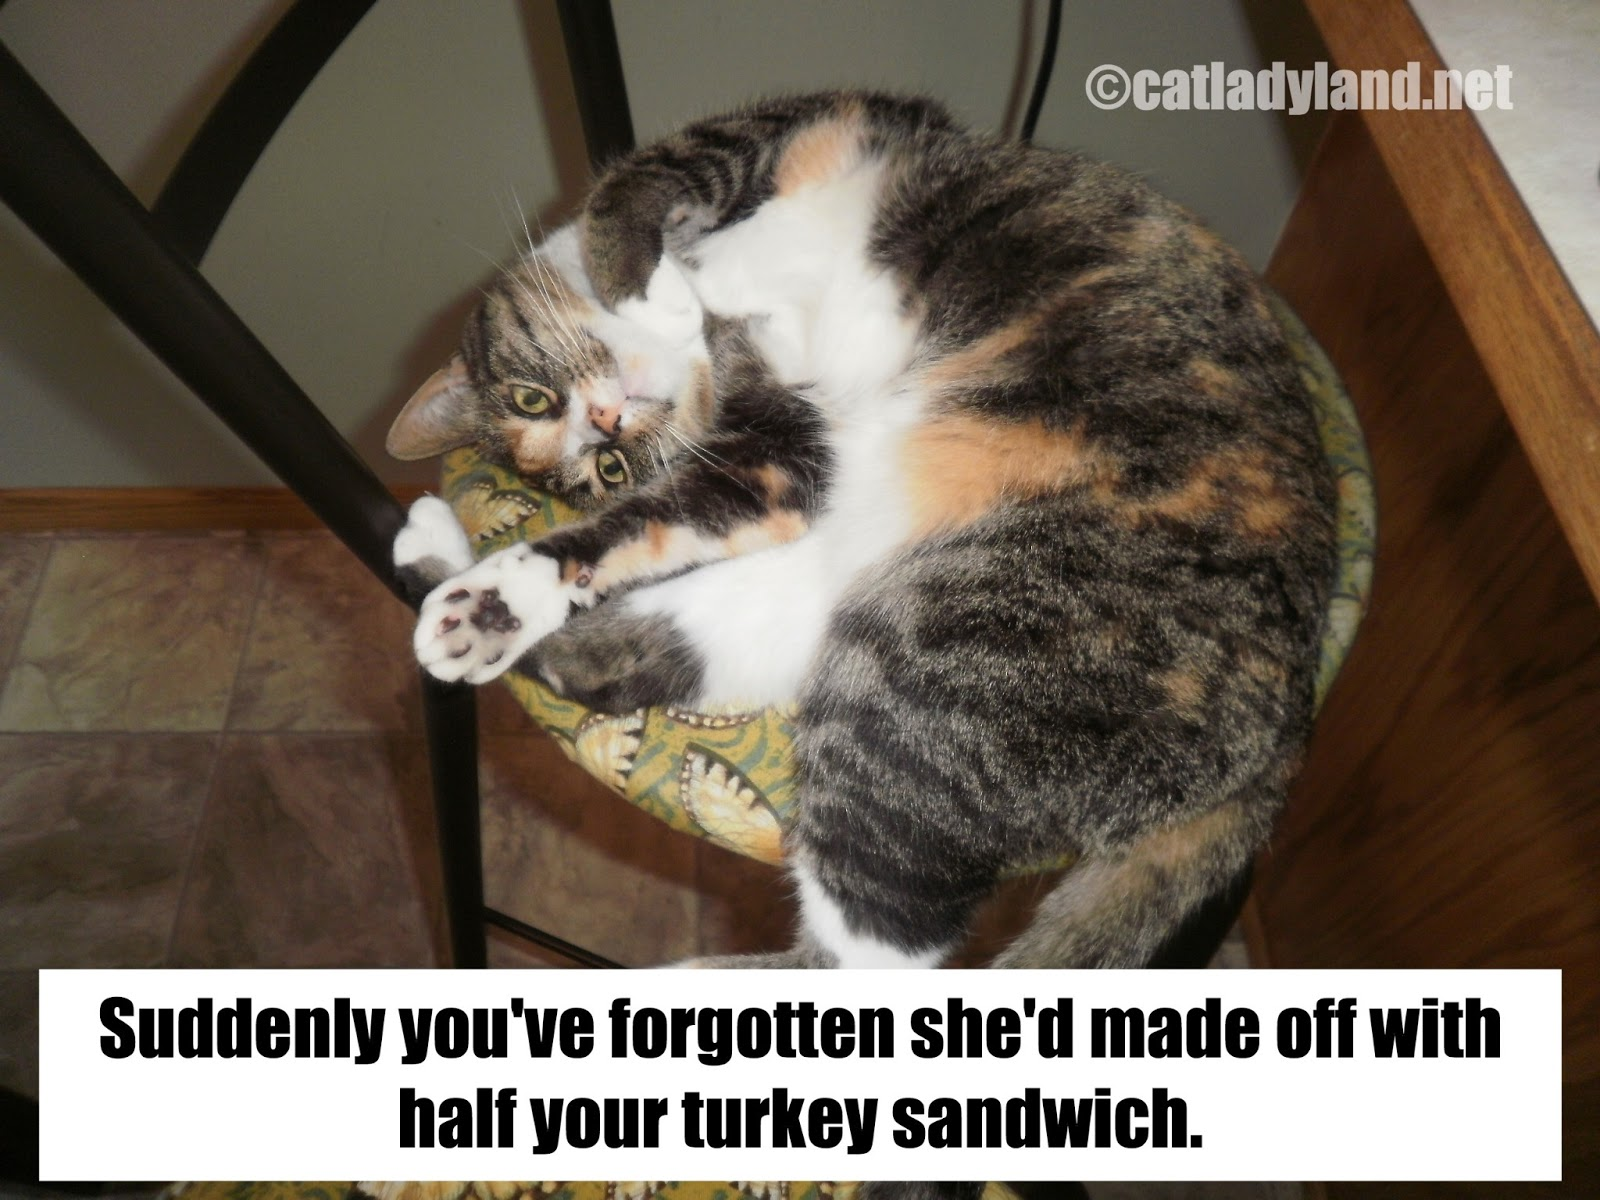 Cats are smart they know when to cute it up